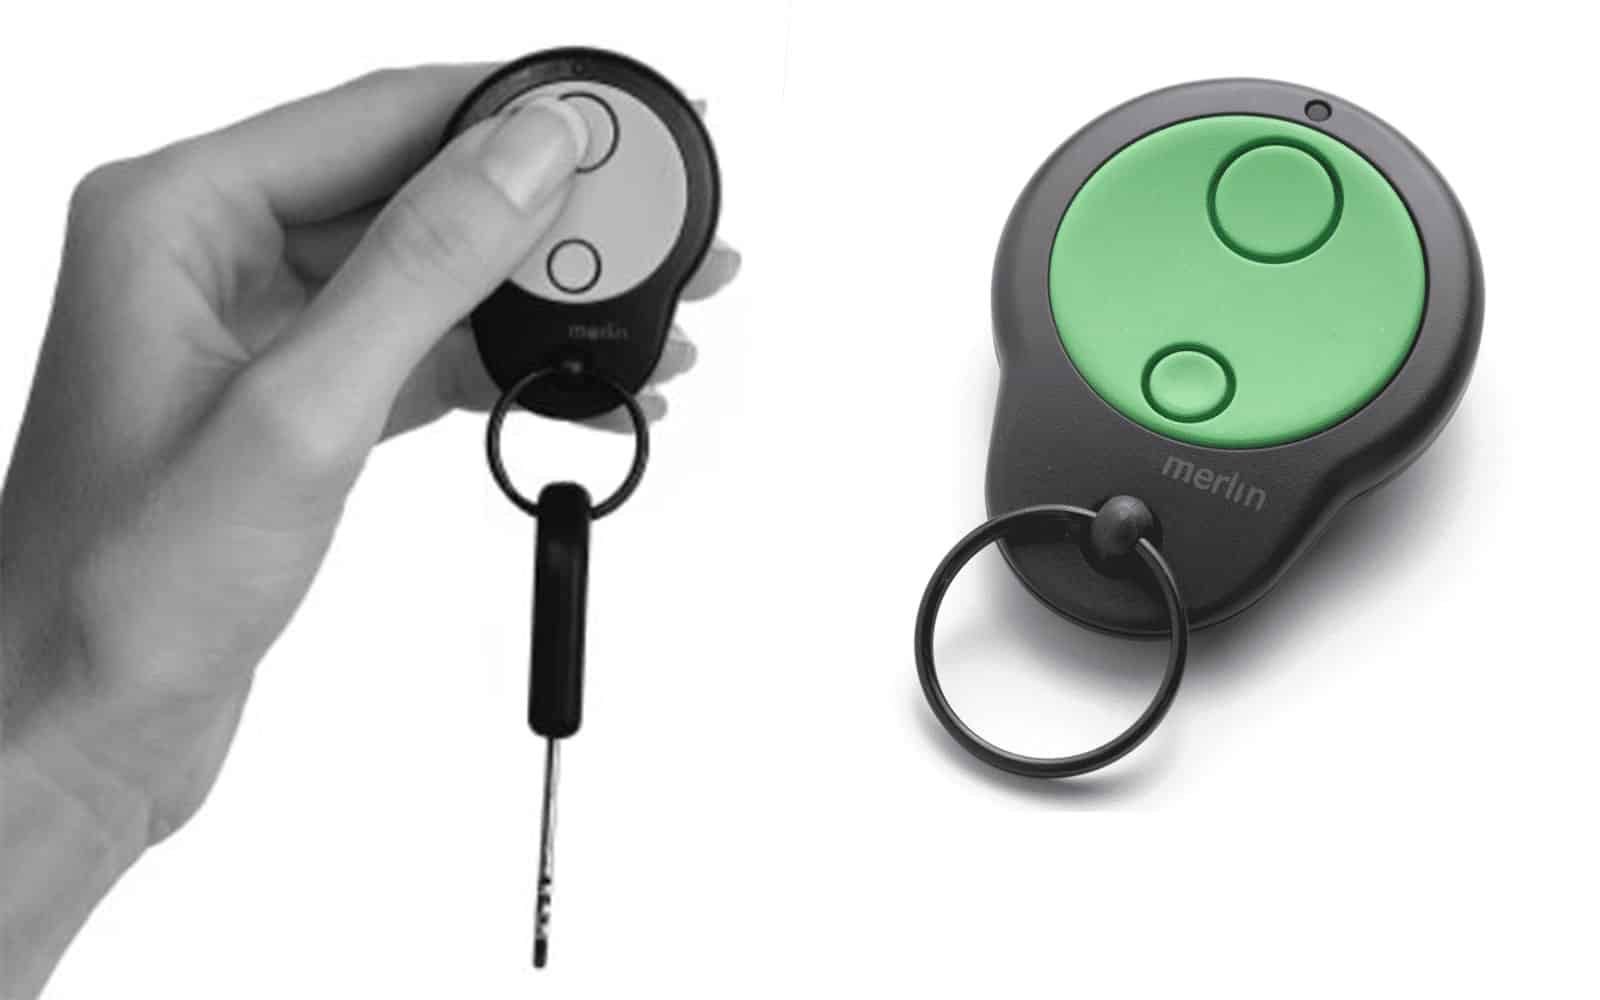 Merlin M842 Garage Door Remote and Remote and Key in Lady's Hand